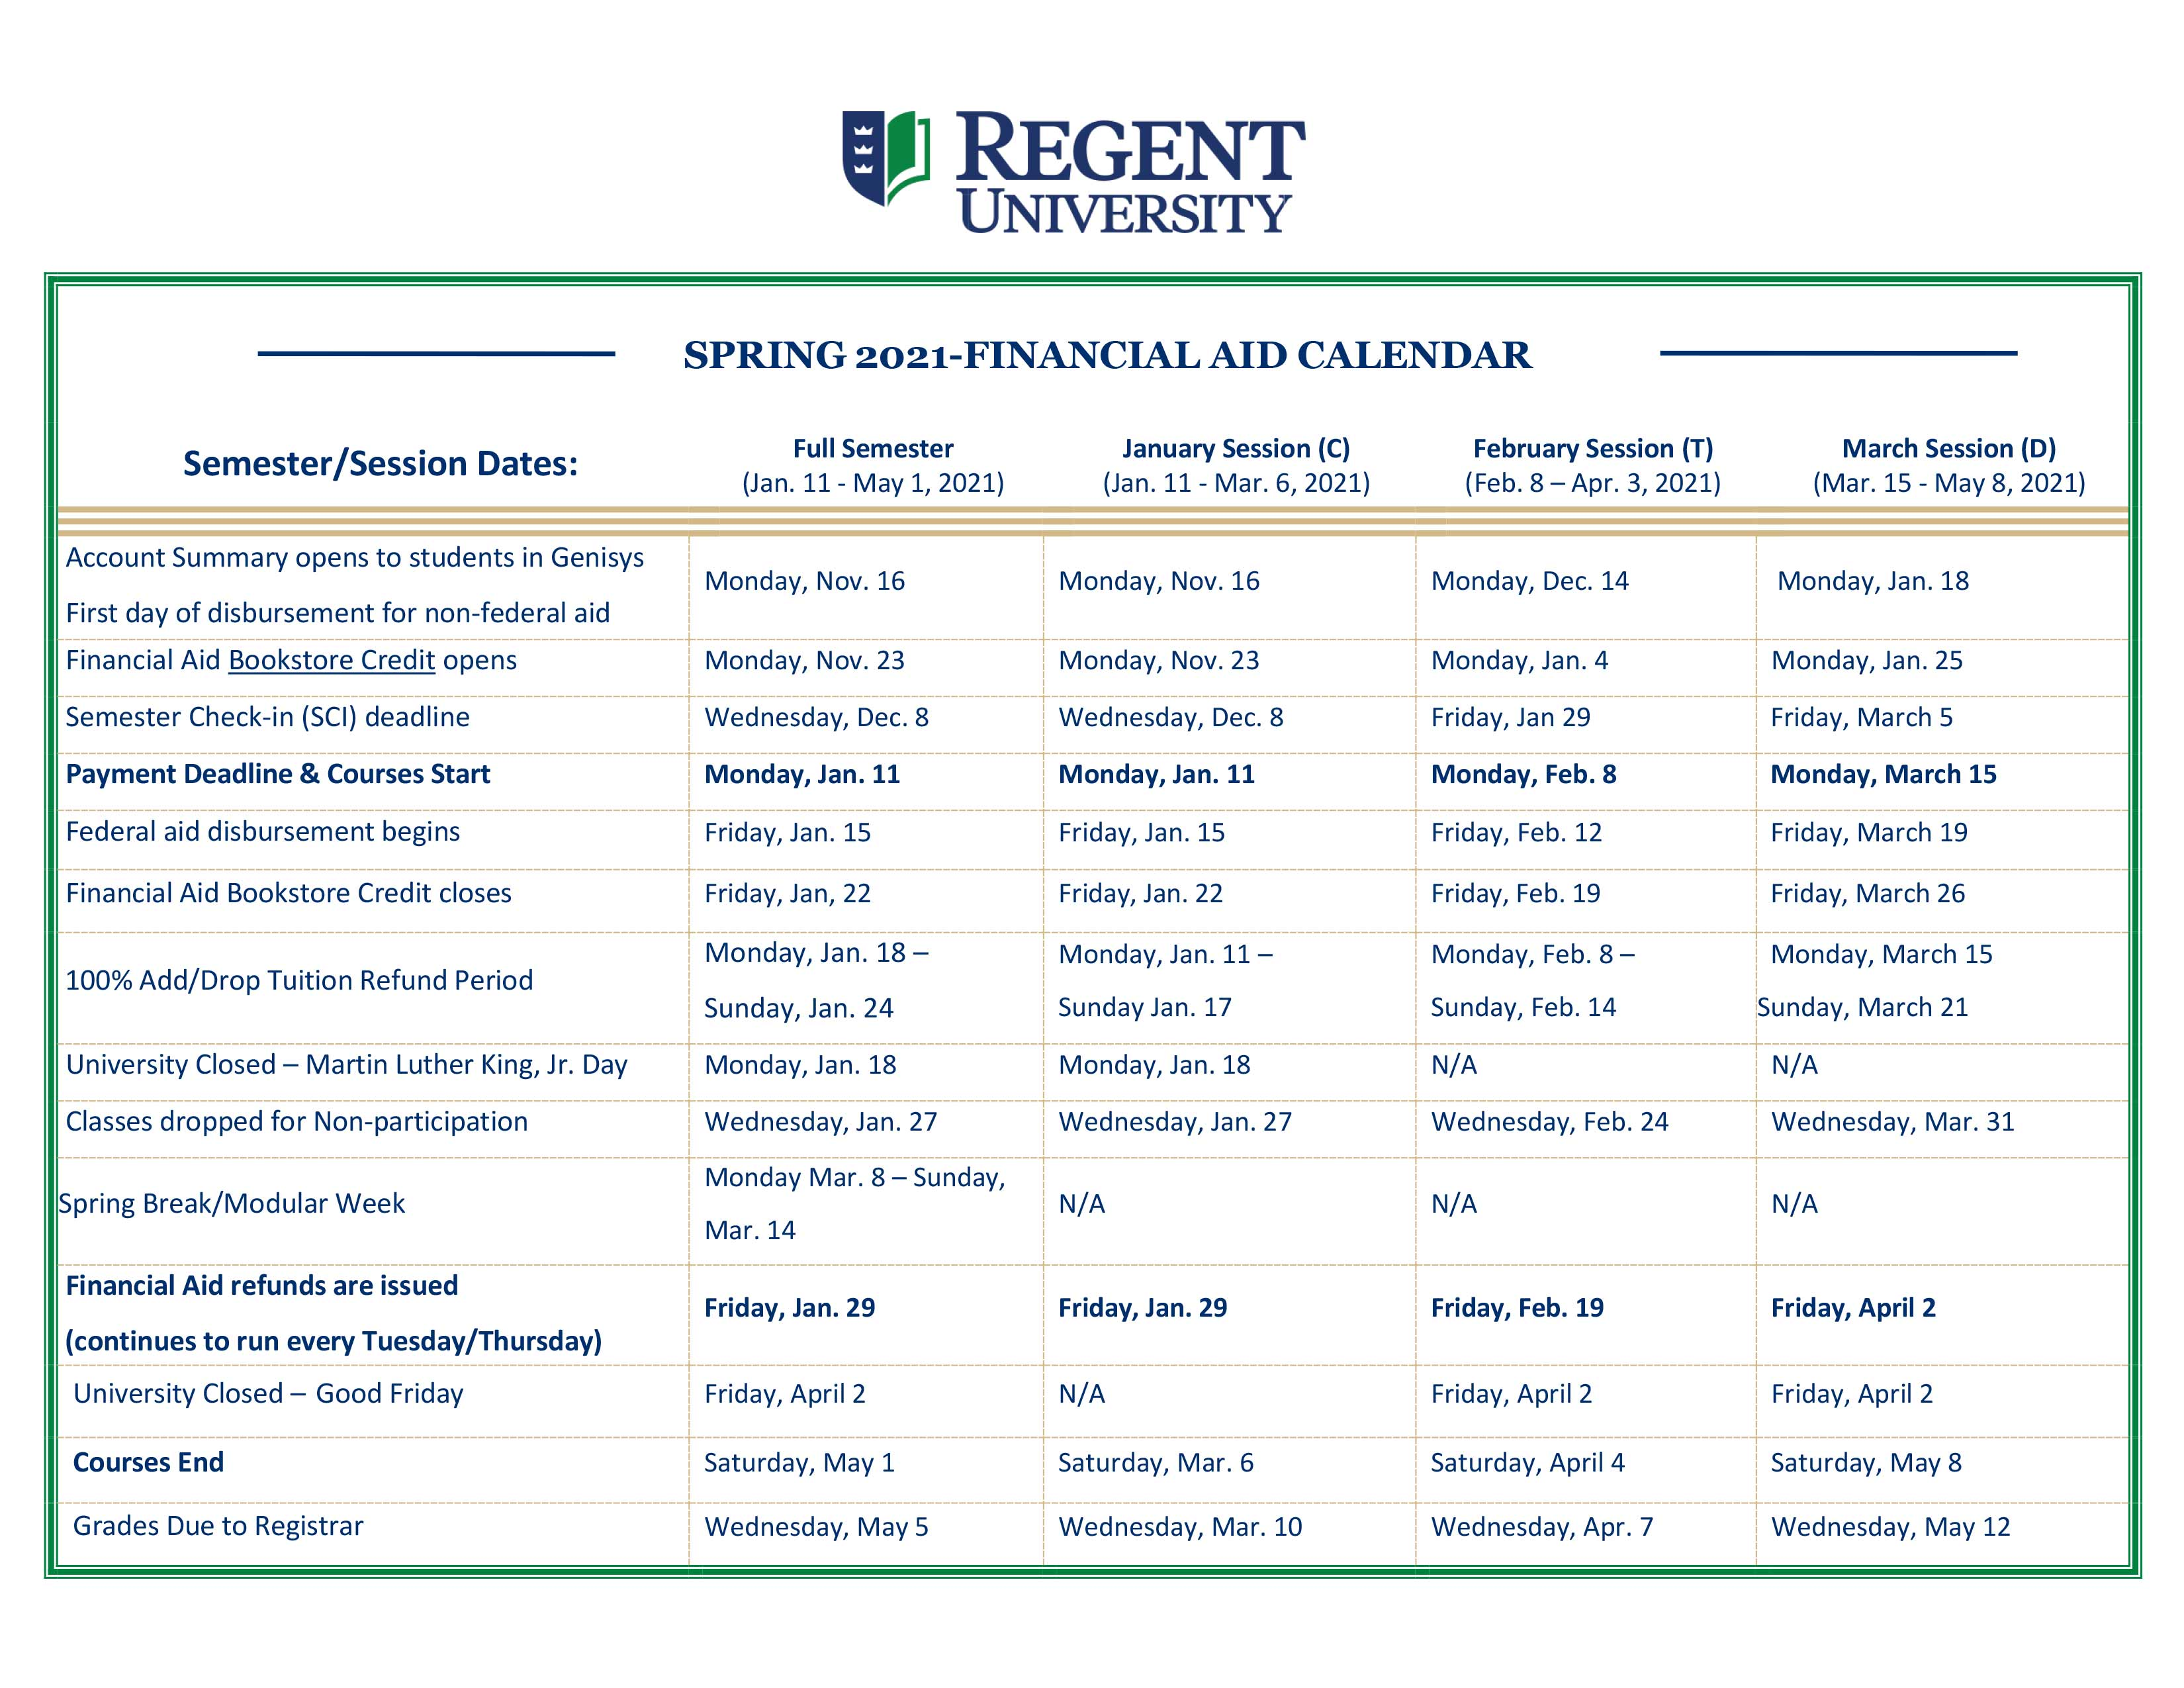 Summer 2019 Financial Aid Calendar